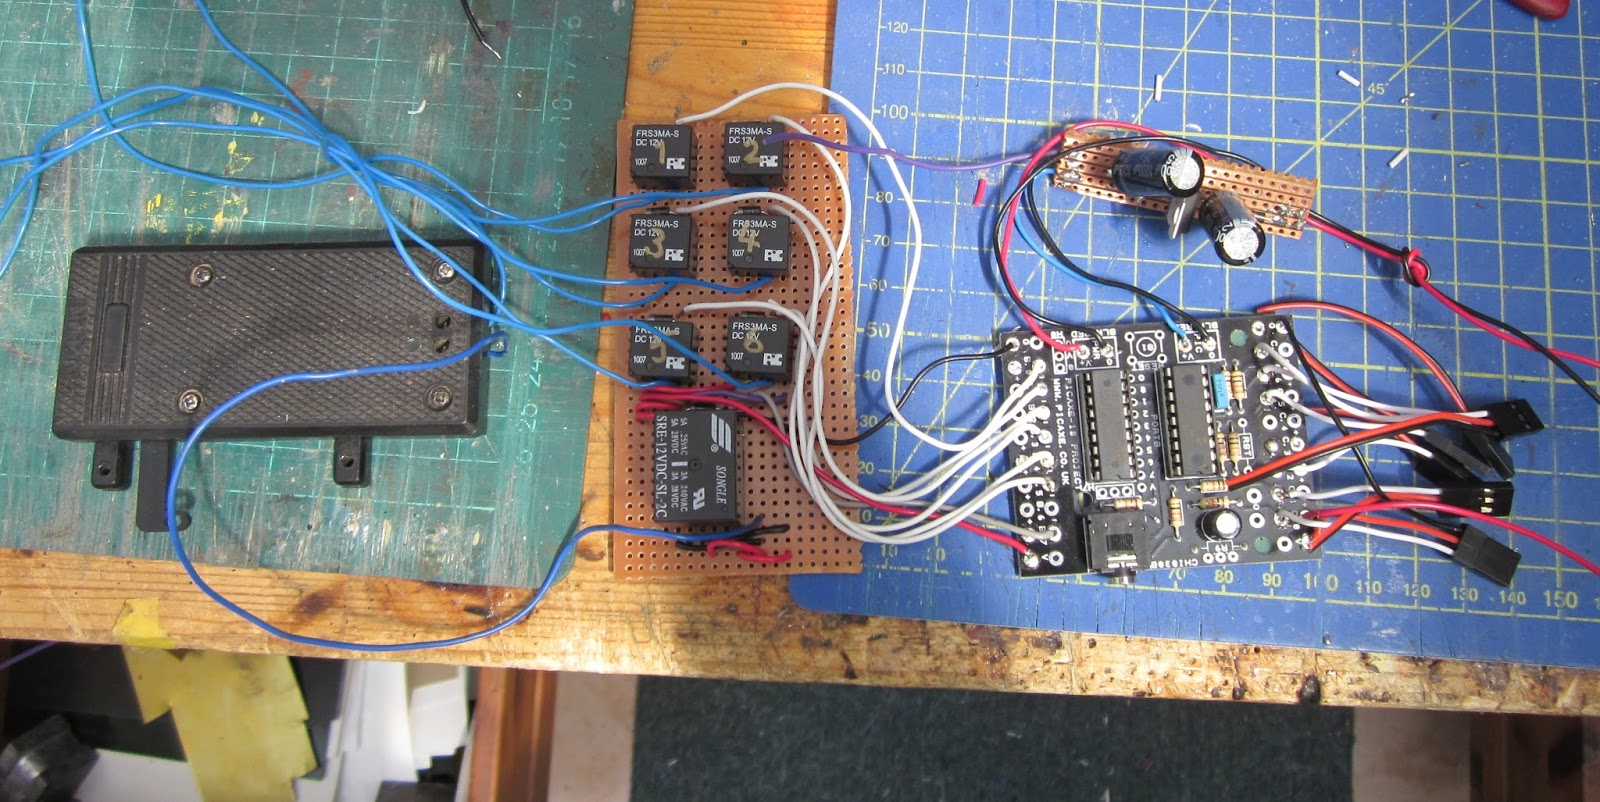 The Picaxe was then loaded with the full program and tested, before the  assembly was connected to the wiring for the point motors and placed in the  control ...